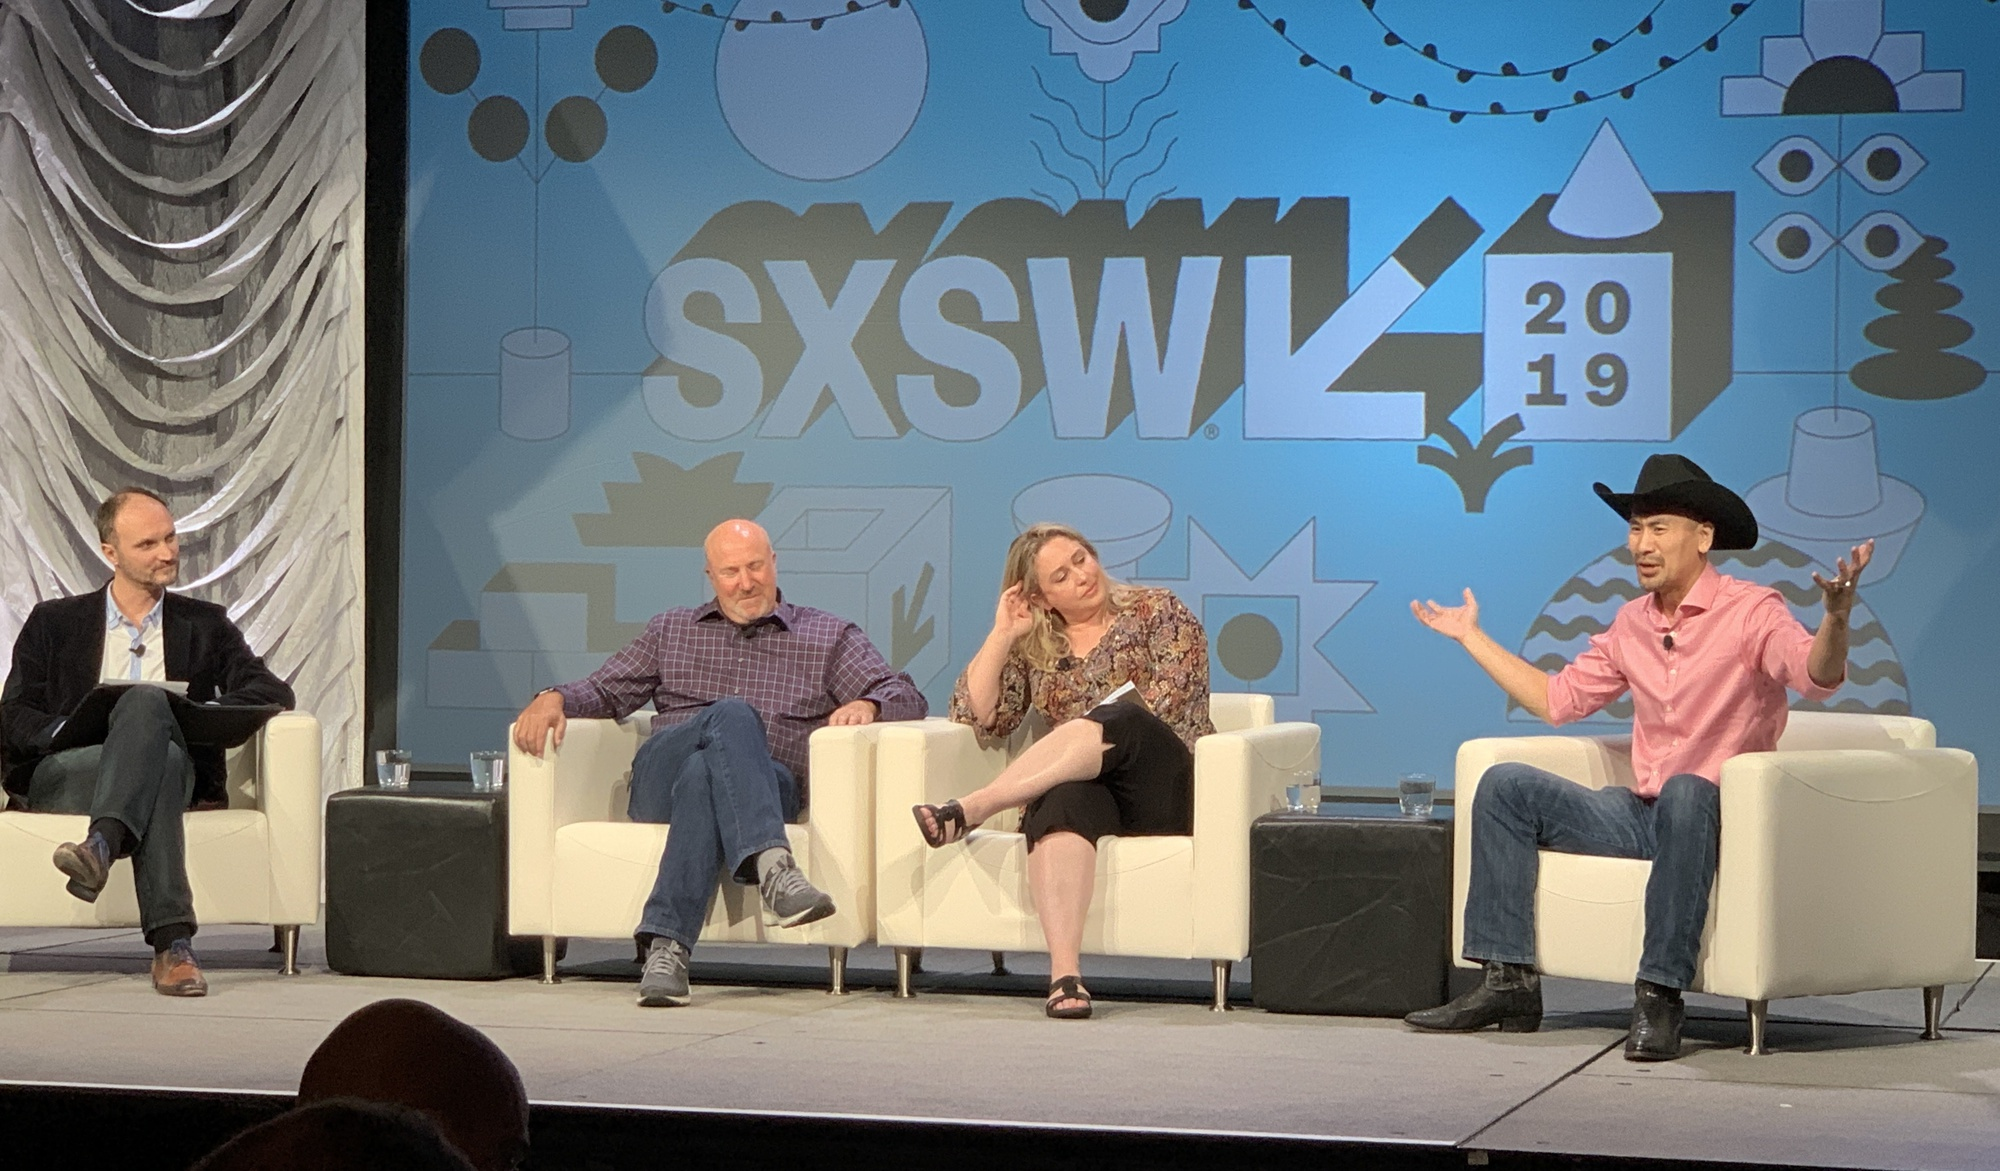 The Blockchain Deathmatch at SXSW in action. From left to right: University of Texas at Austin's Cesare Fracassi, IBM OpenTech's Christopher Ferris, St. Mary's University School of Law's Angela Walch, and Bitcoin Core developer Jimmy Song (photo by Omar L. Gallaga for Modern Consensus).